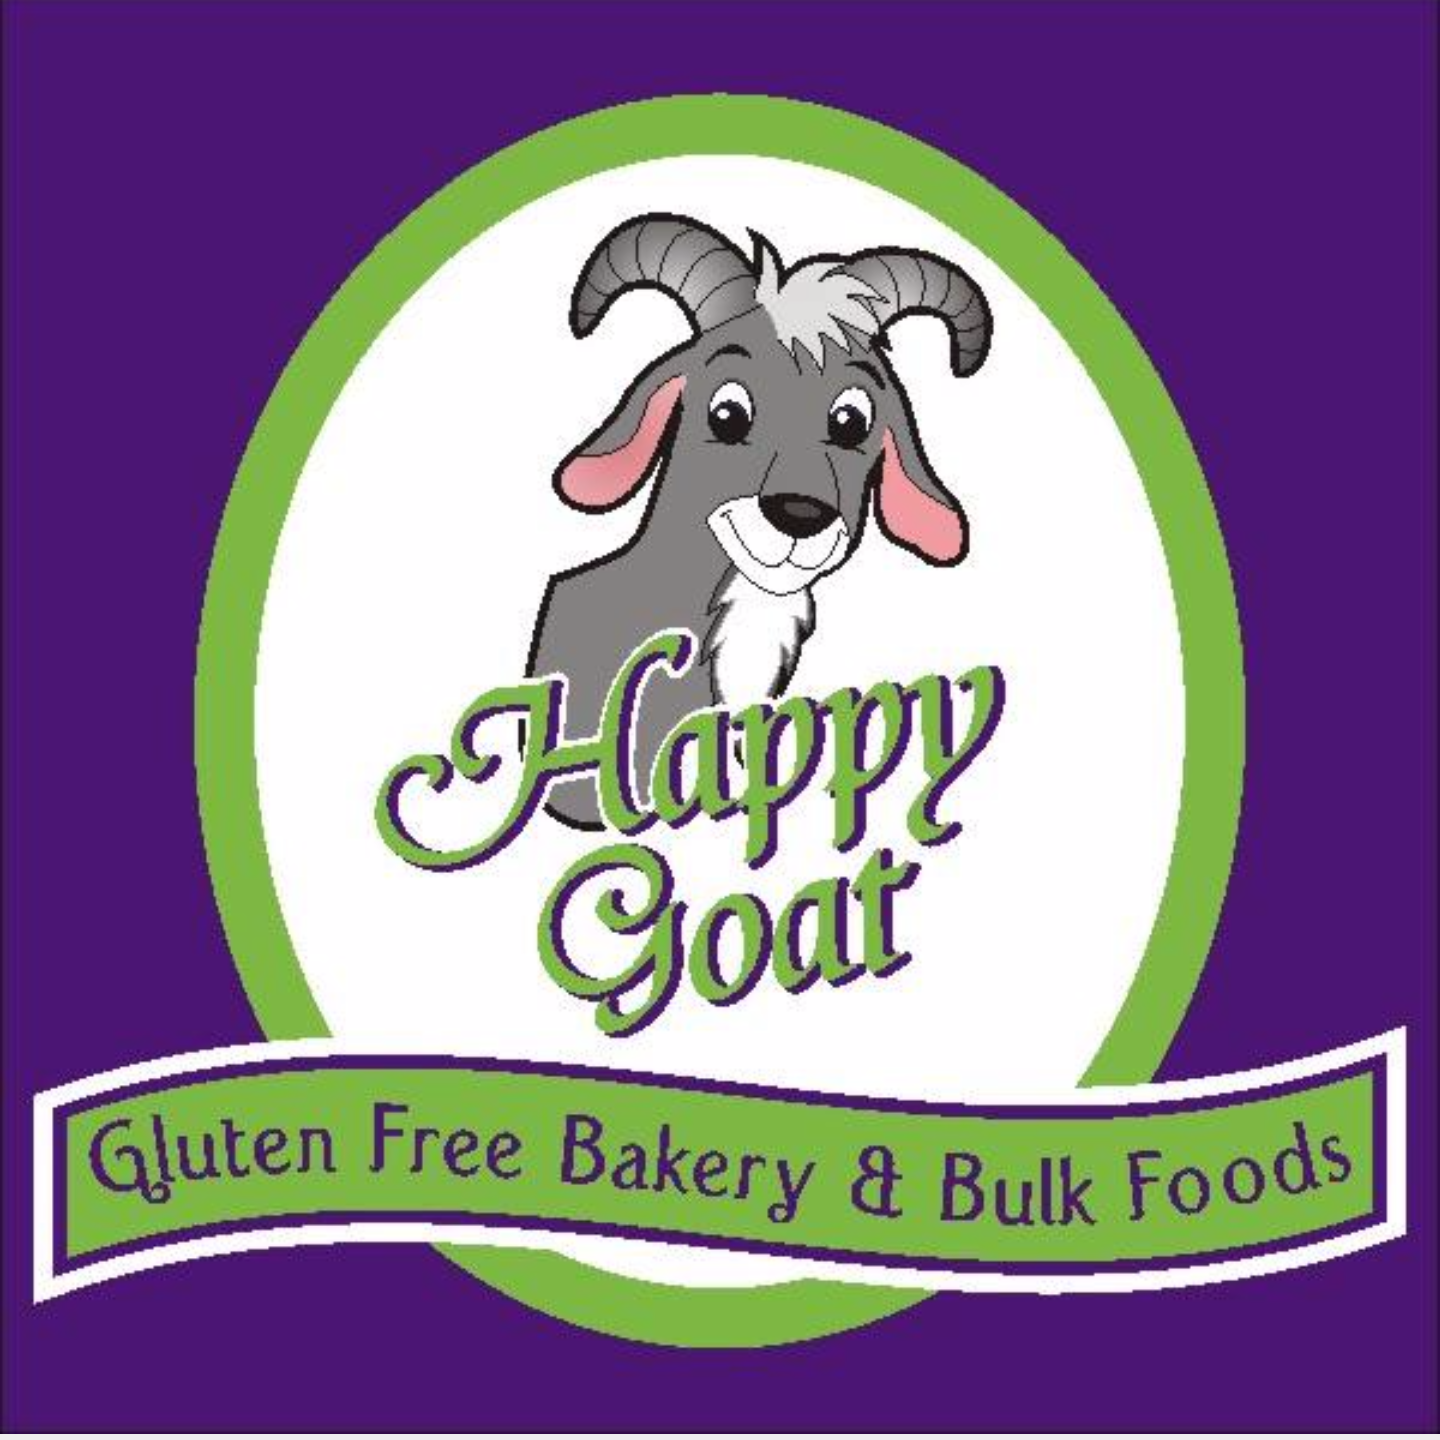 Gluten-Free Bakery and Bulk Food Store